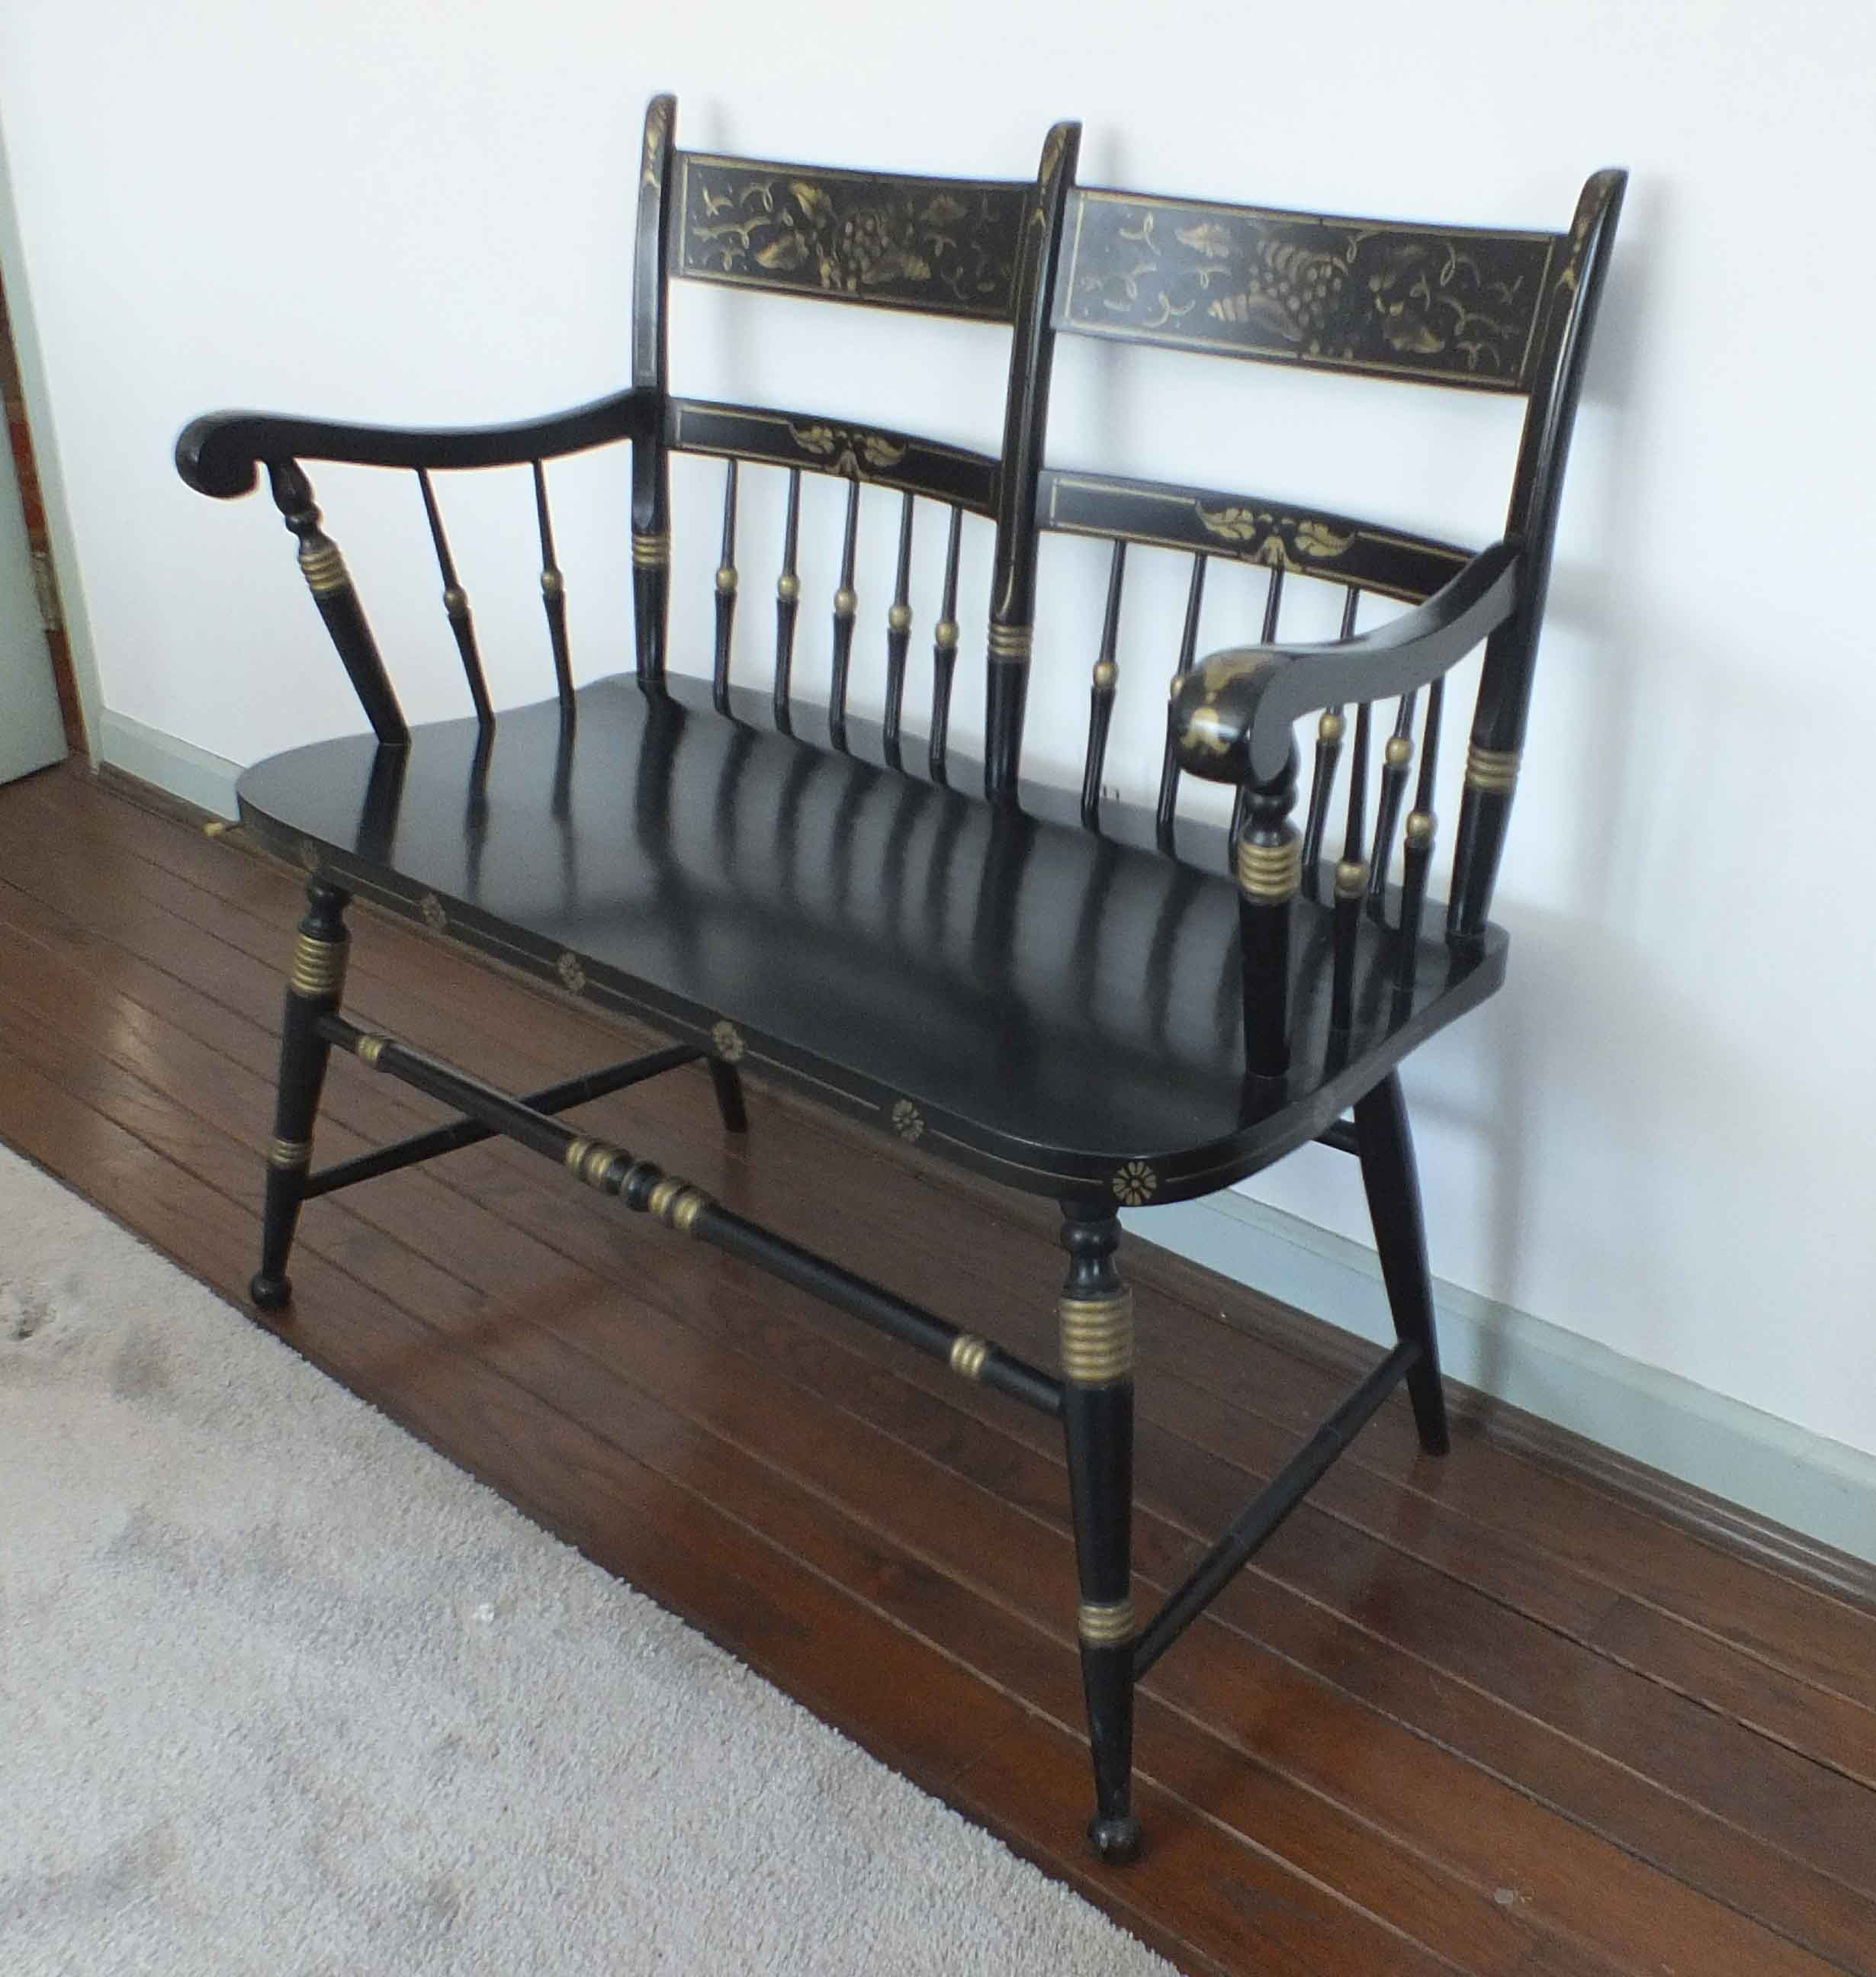 tell city chairs pattern 4548 wooden low babies chair two seater hitchcock style bench ebth